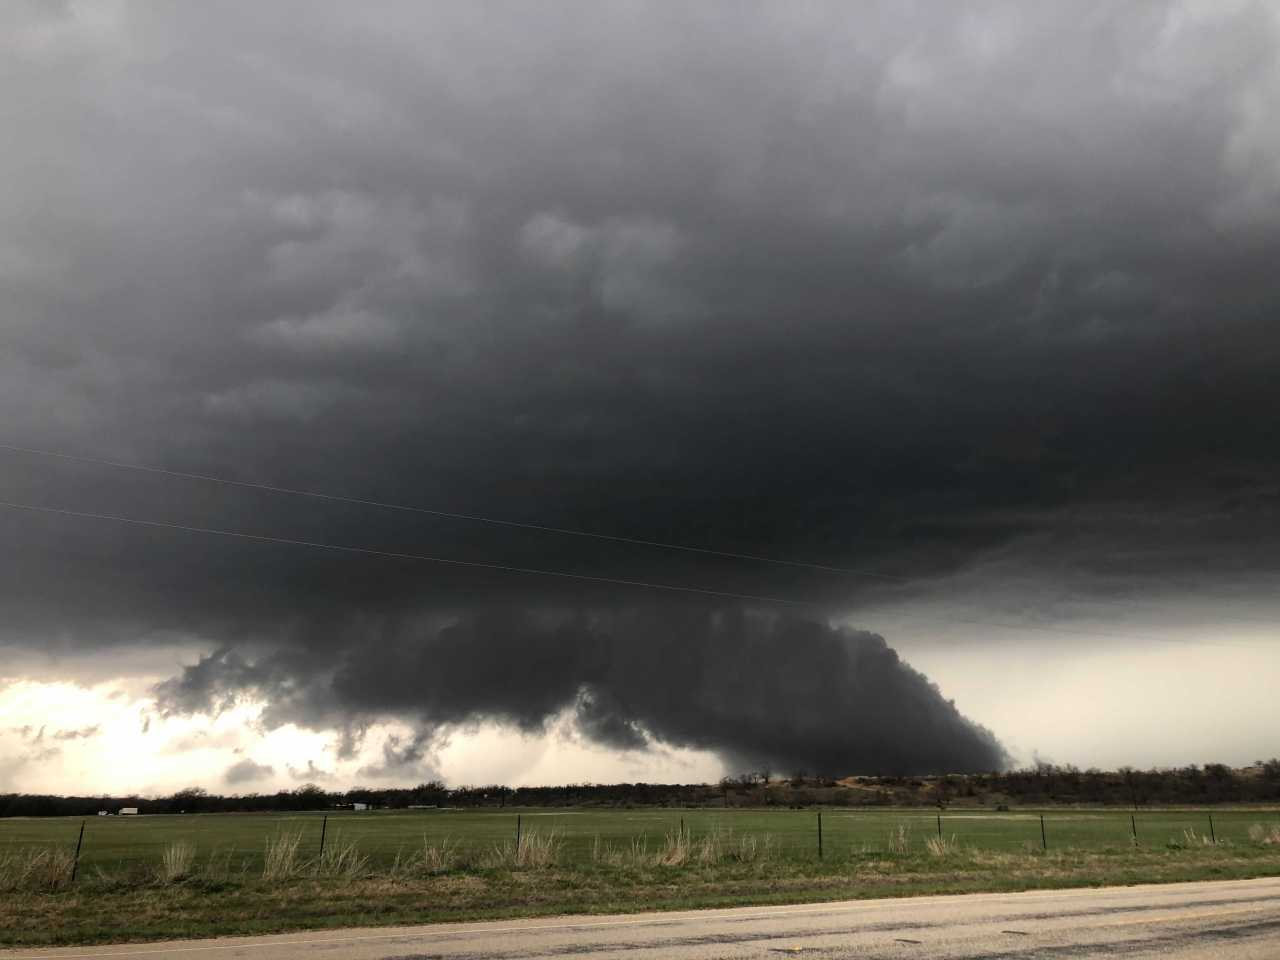 LIVE BLOG: Storm damage reports and weather conditions from across Central Texas